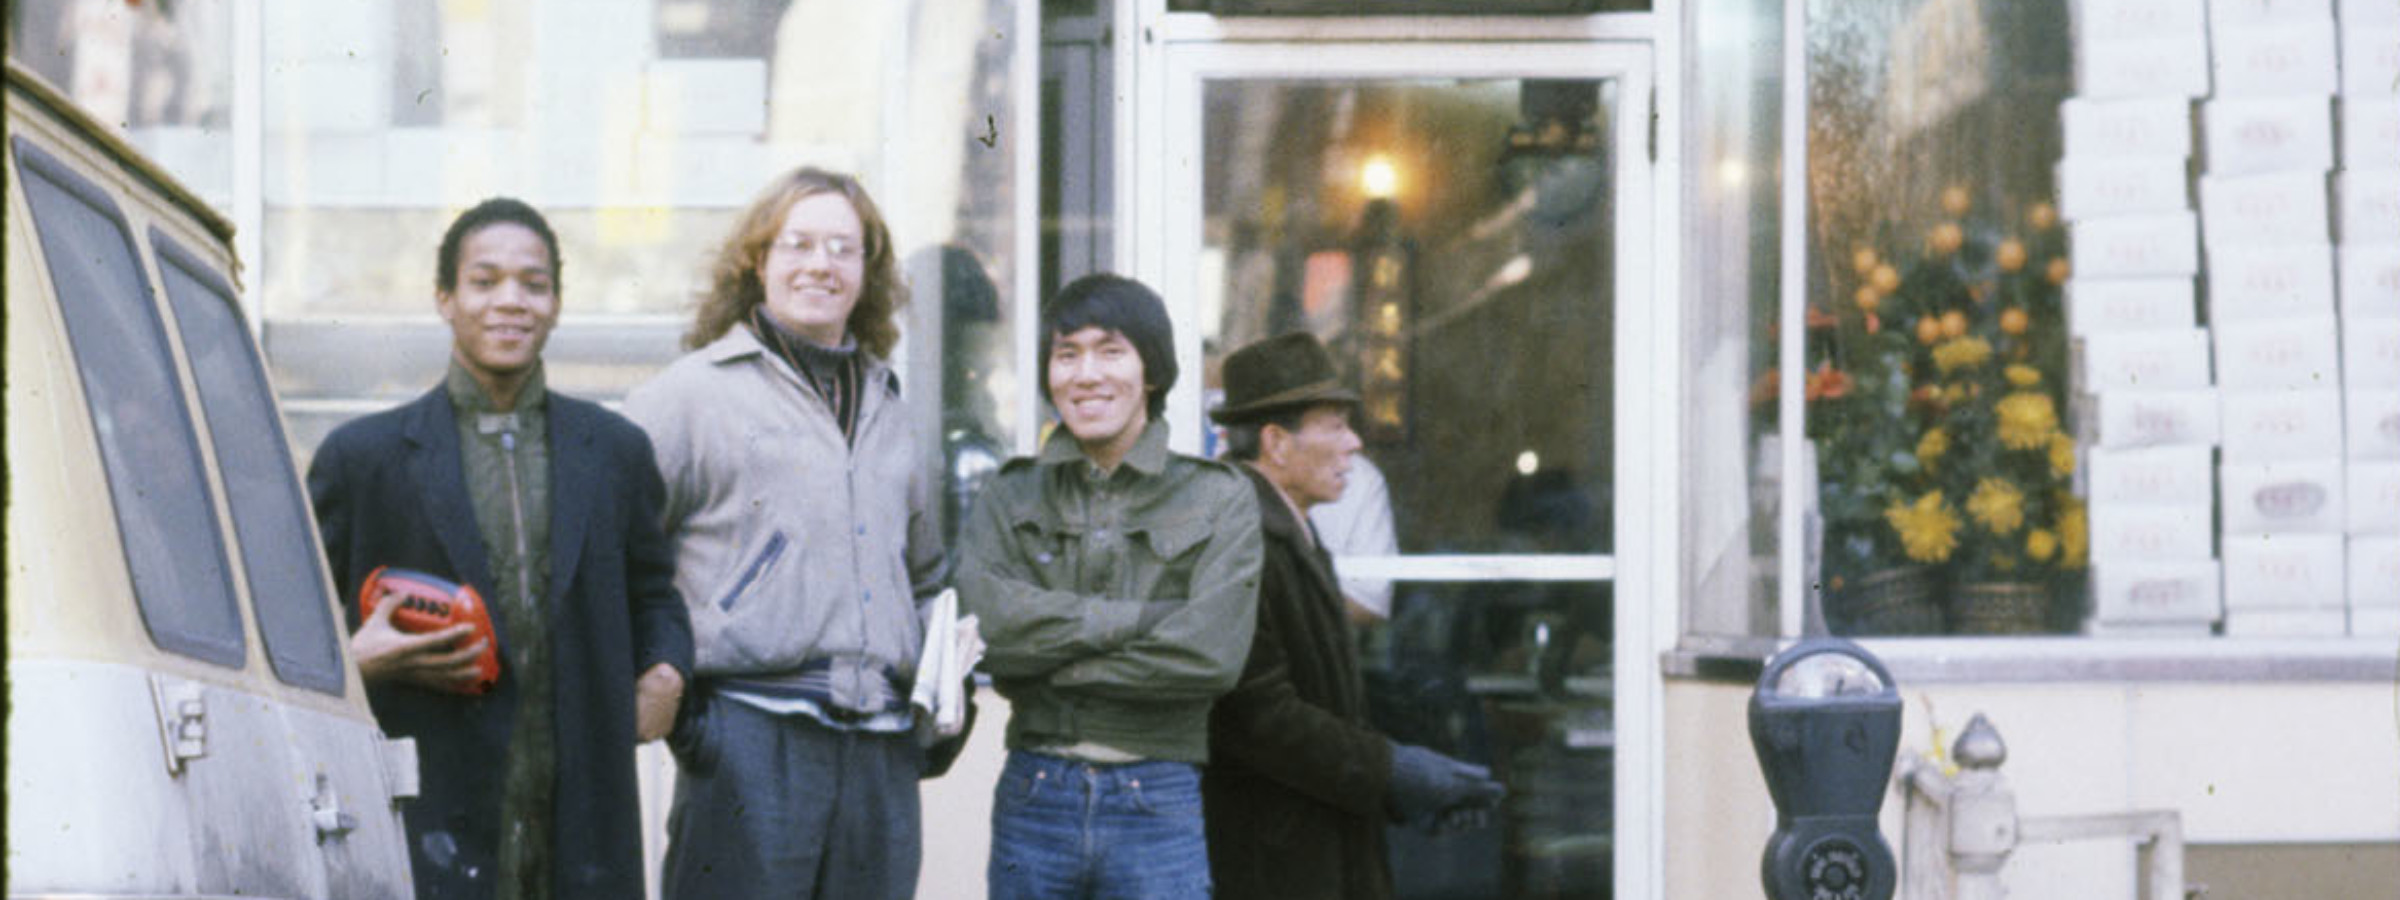 Alexis Adler, Jean and Friends outside Golden Gate Coffee Shop